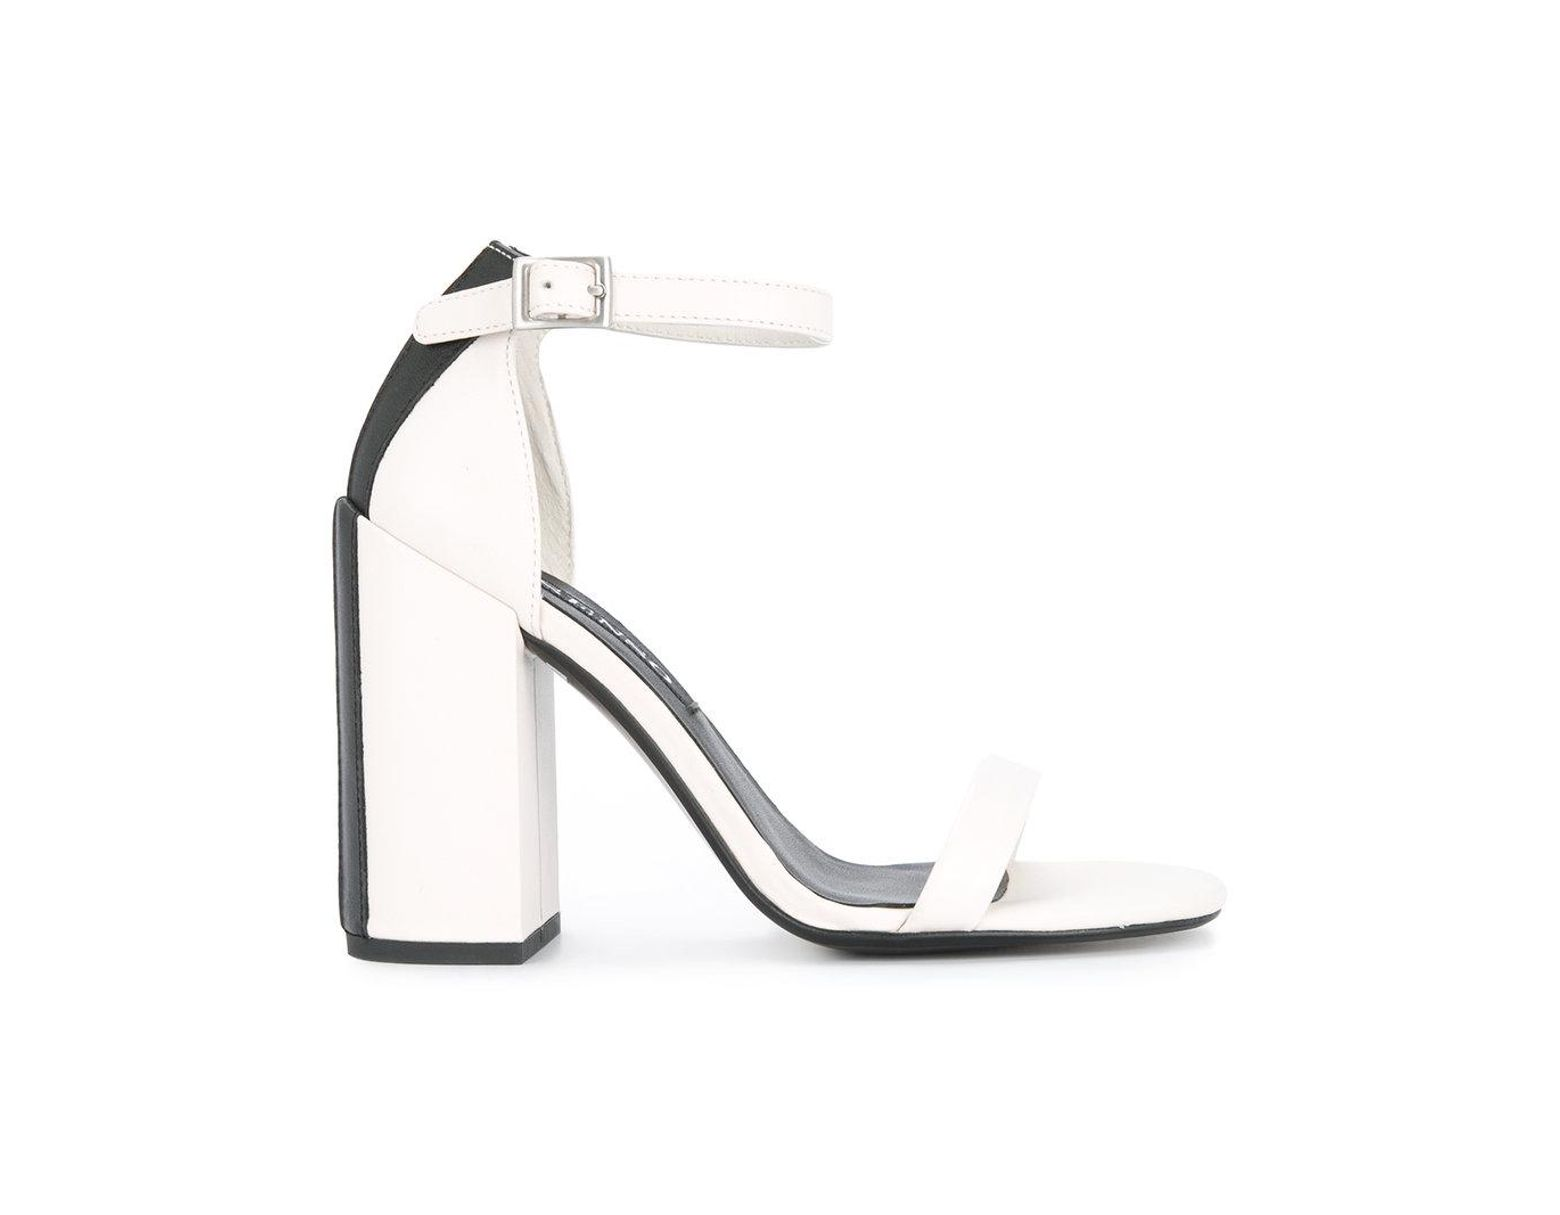 5612f0cf59 Senso Lana Sandals in White - Lyst